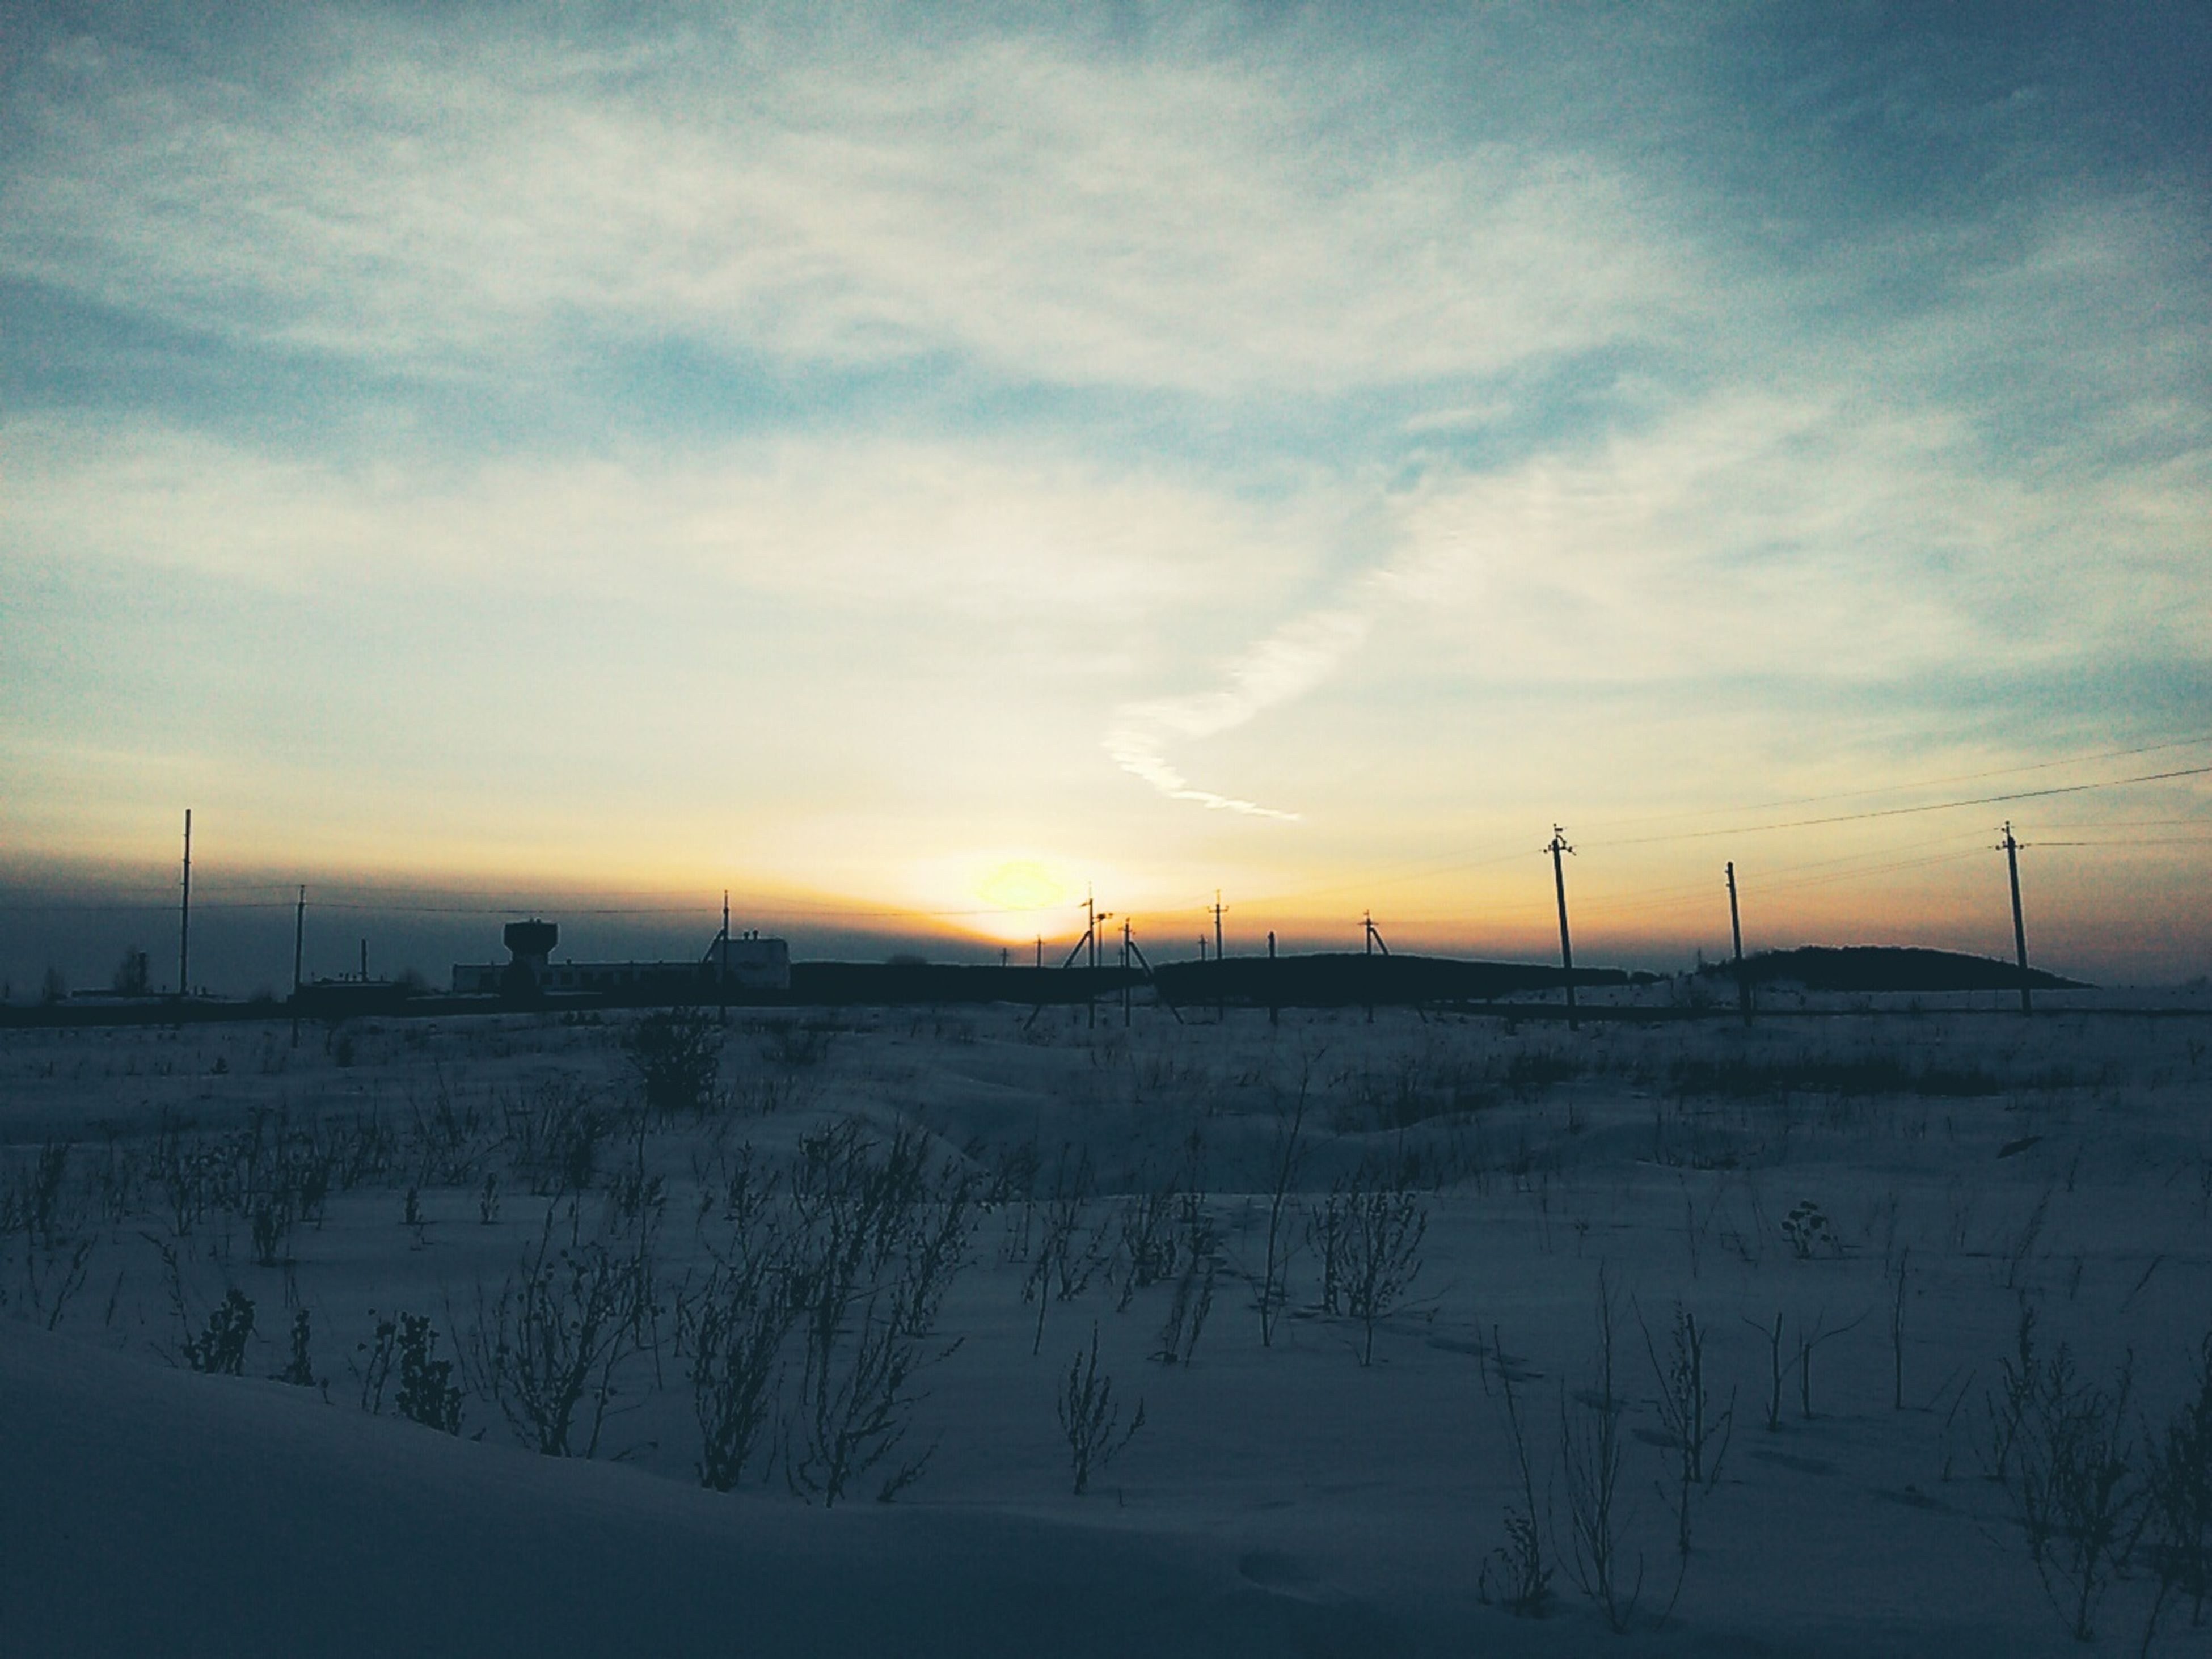 winter, snow, cold temperature, landscape, weather, tranquility, season, tranquil scene, field, sky, scenics, nature, sunset, beauty in nature, covering, cloud - sky, frozen, snow covered, rural scene, non-urban scene